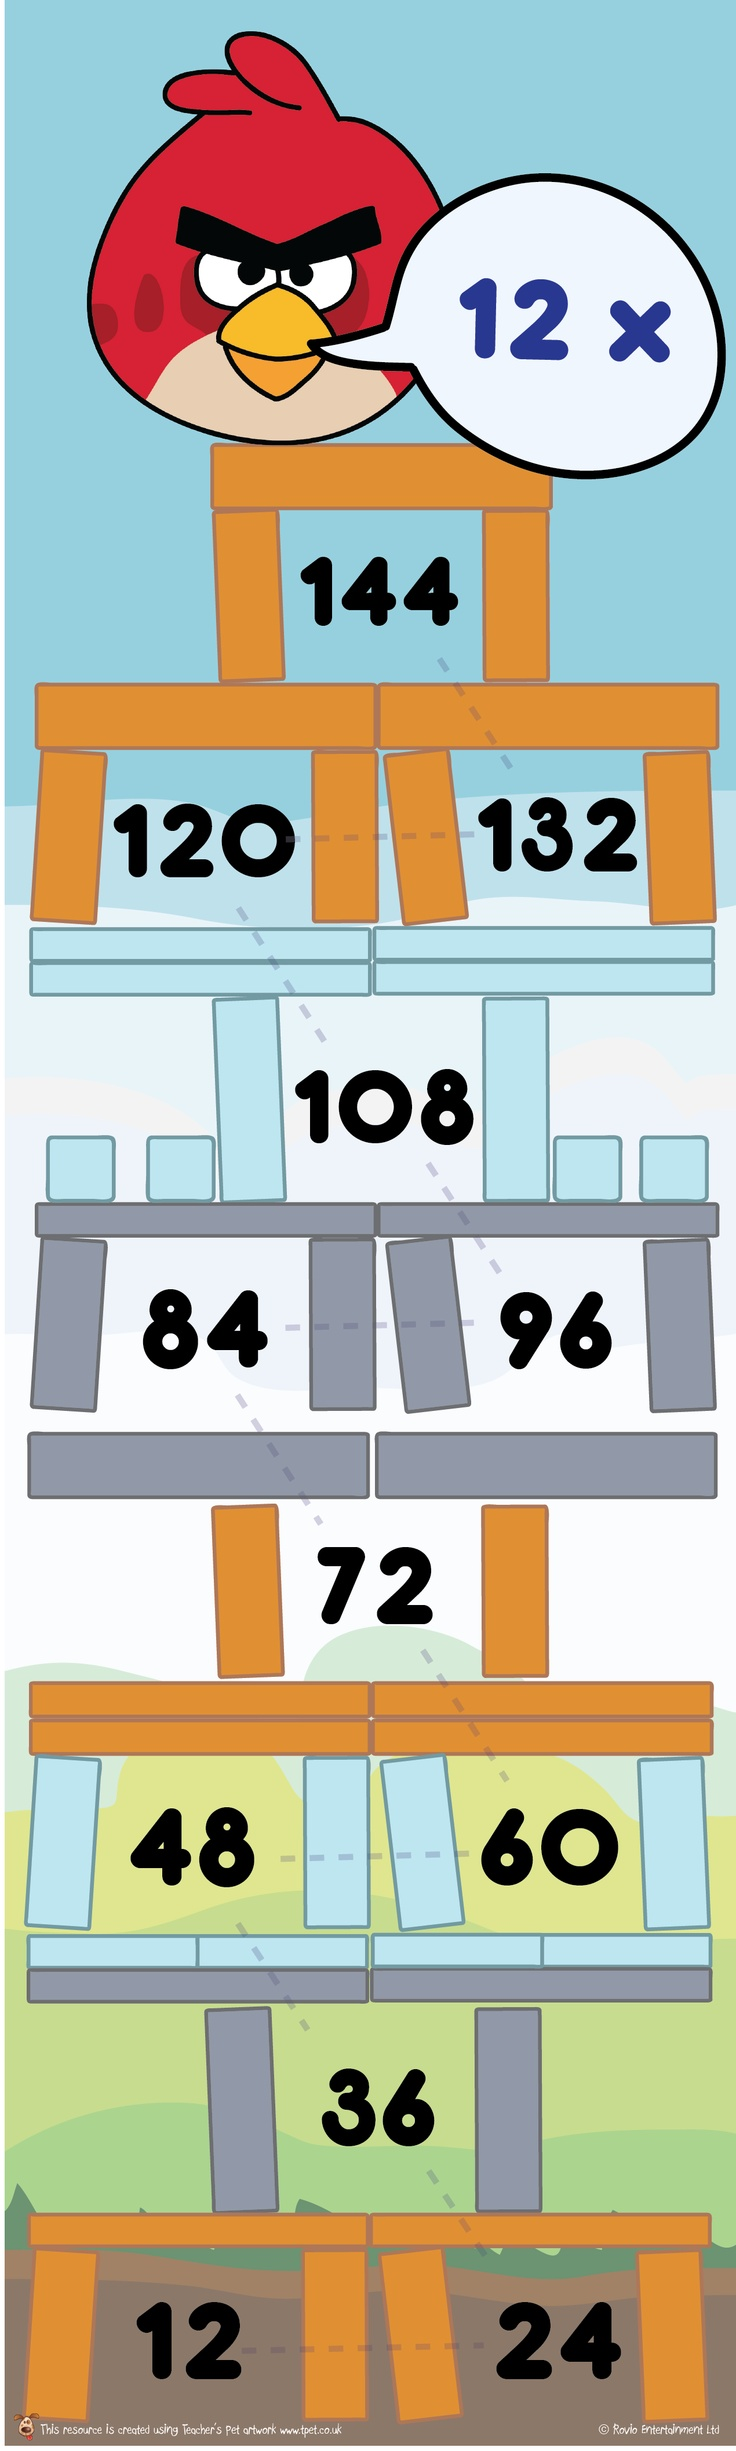 FREE Angry Birds Times Tables displays x1-x12  http://displays.tpet.co.uk/#/Search/angry+birds?page=1